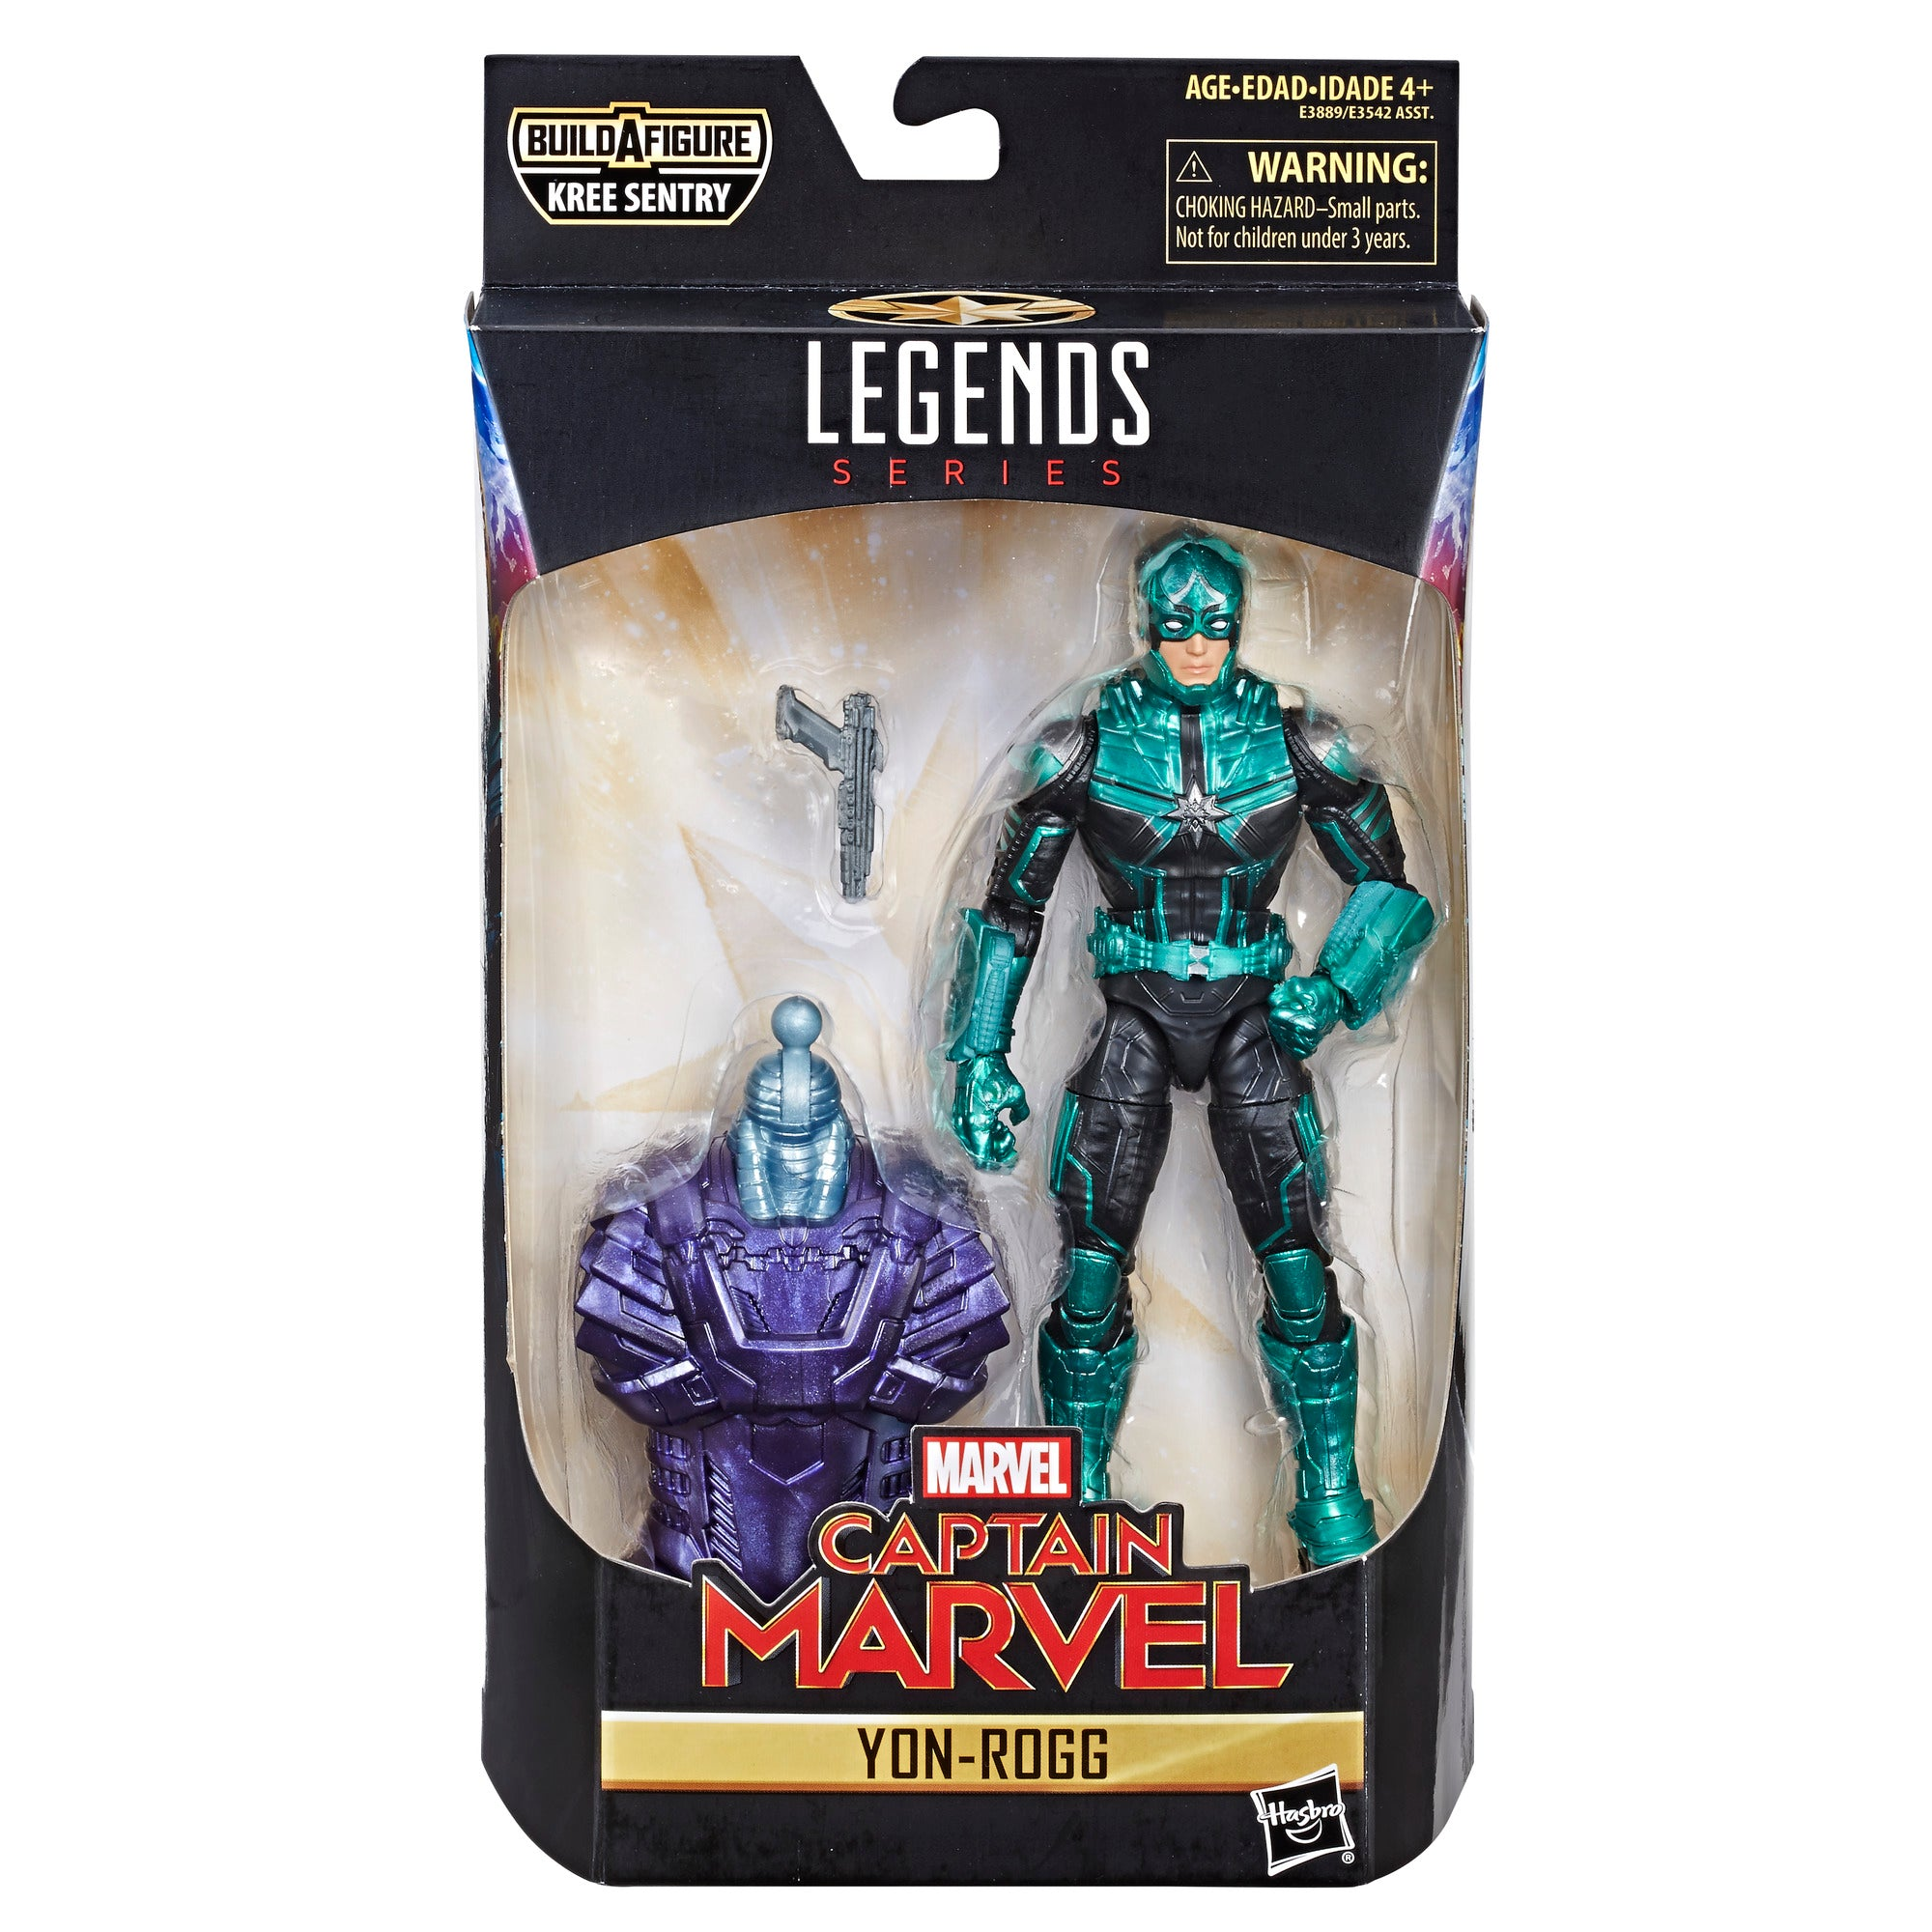 Hasbro - Marvel Legends - Captain Marvel - Kree Sentry BAF - Yon-Rogg Figure (E3889)